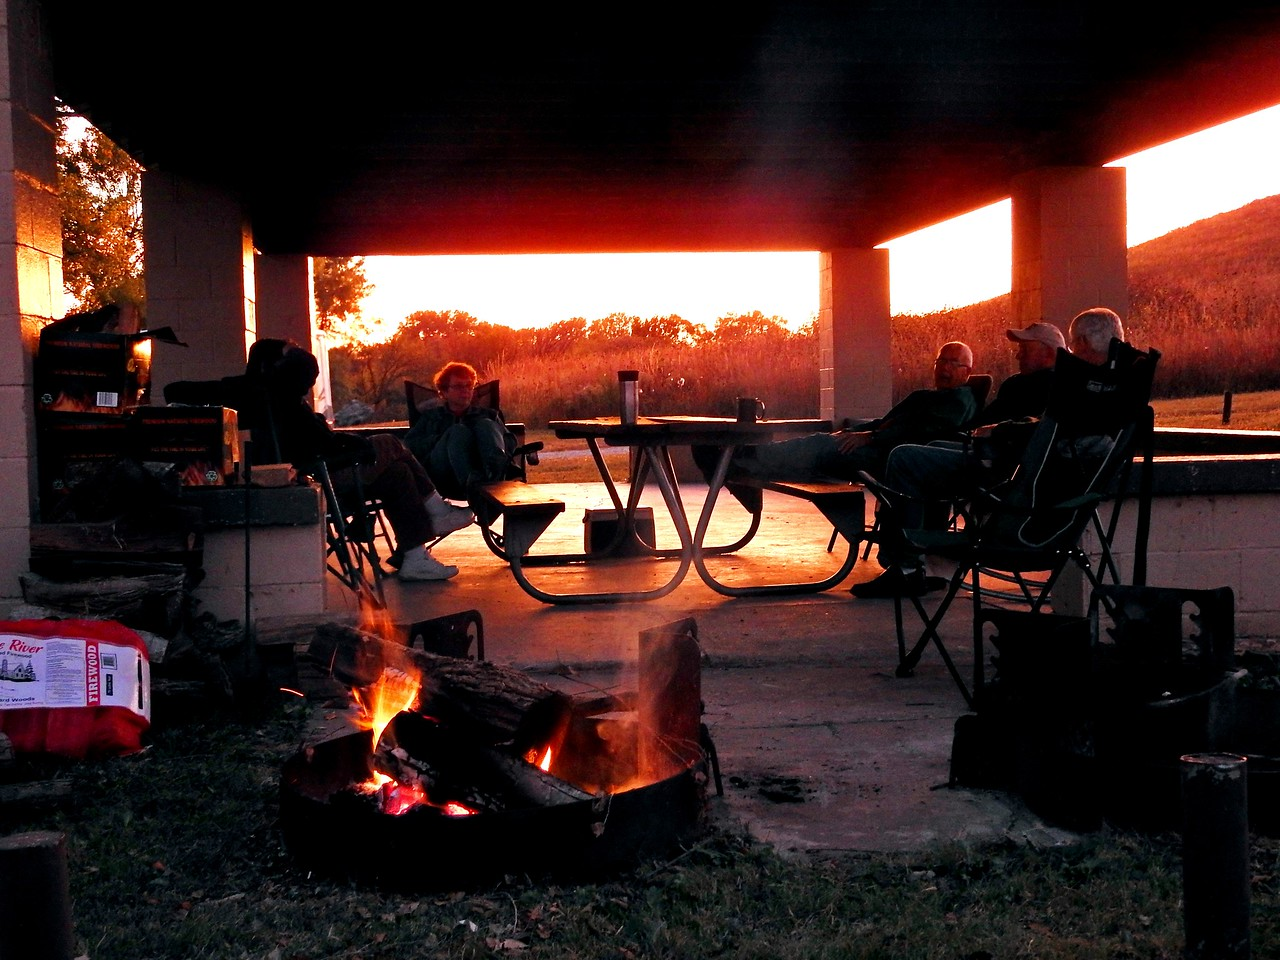 Magic lighting is a prelude to the nighttime campfire ritual.